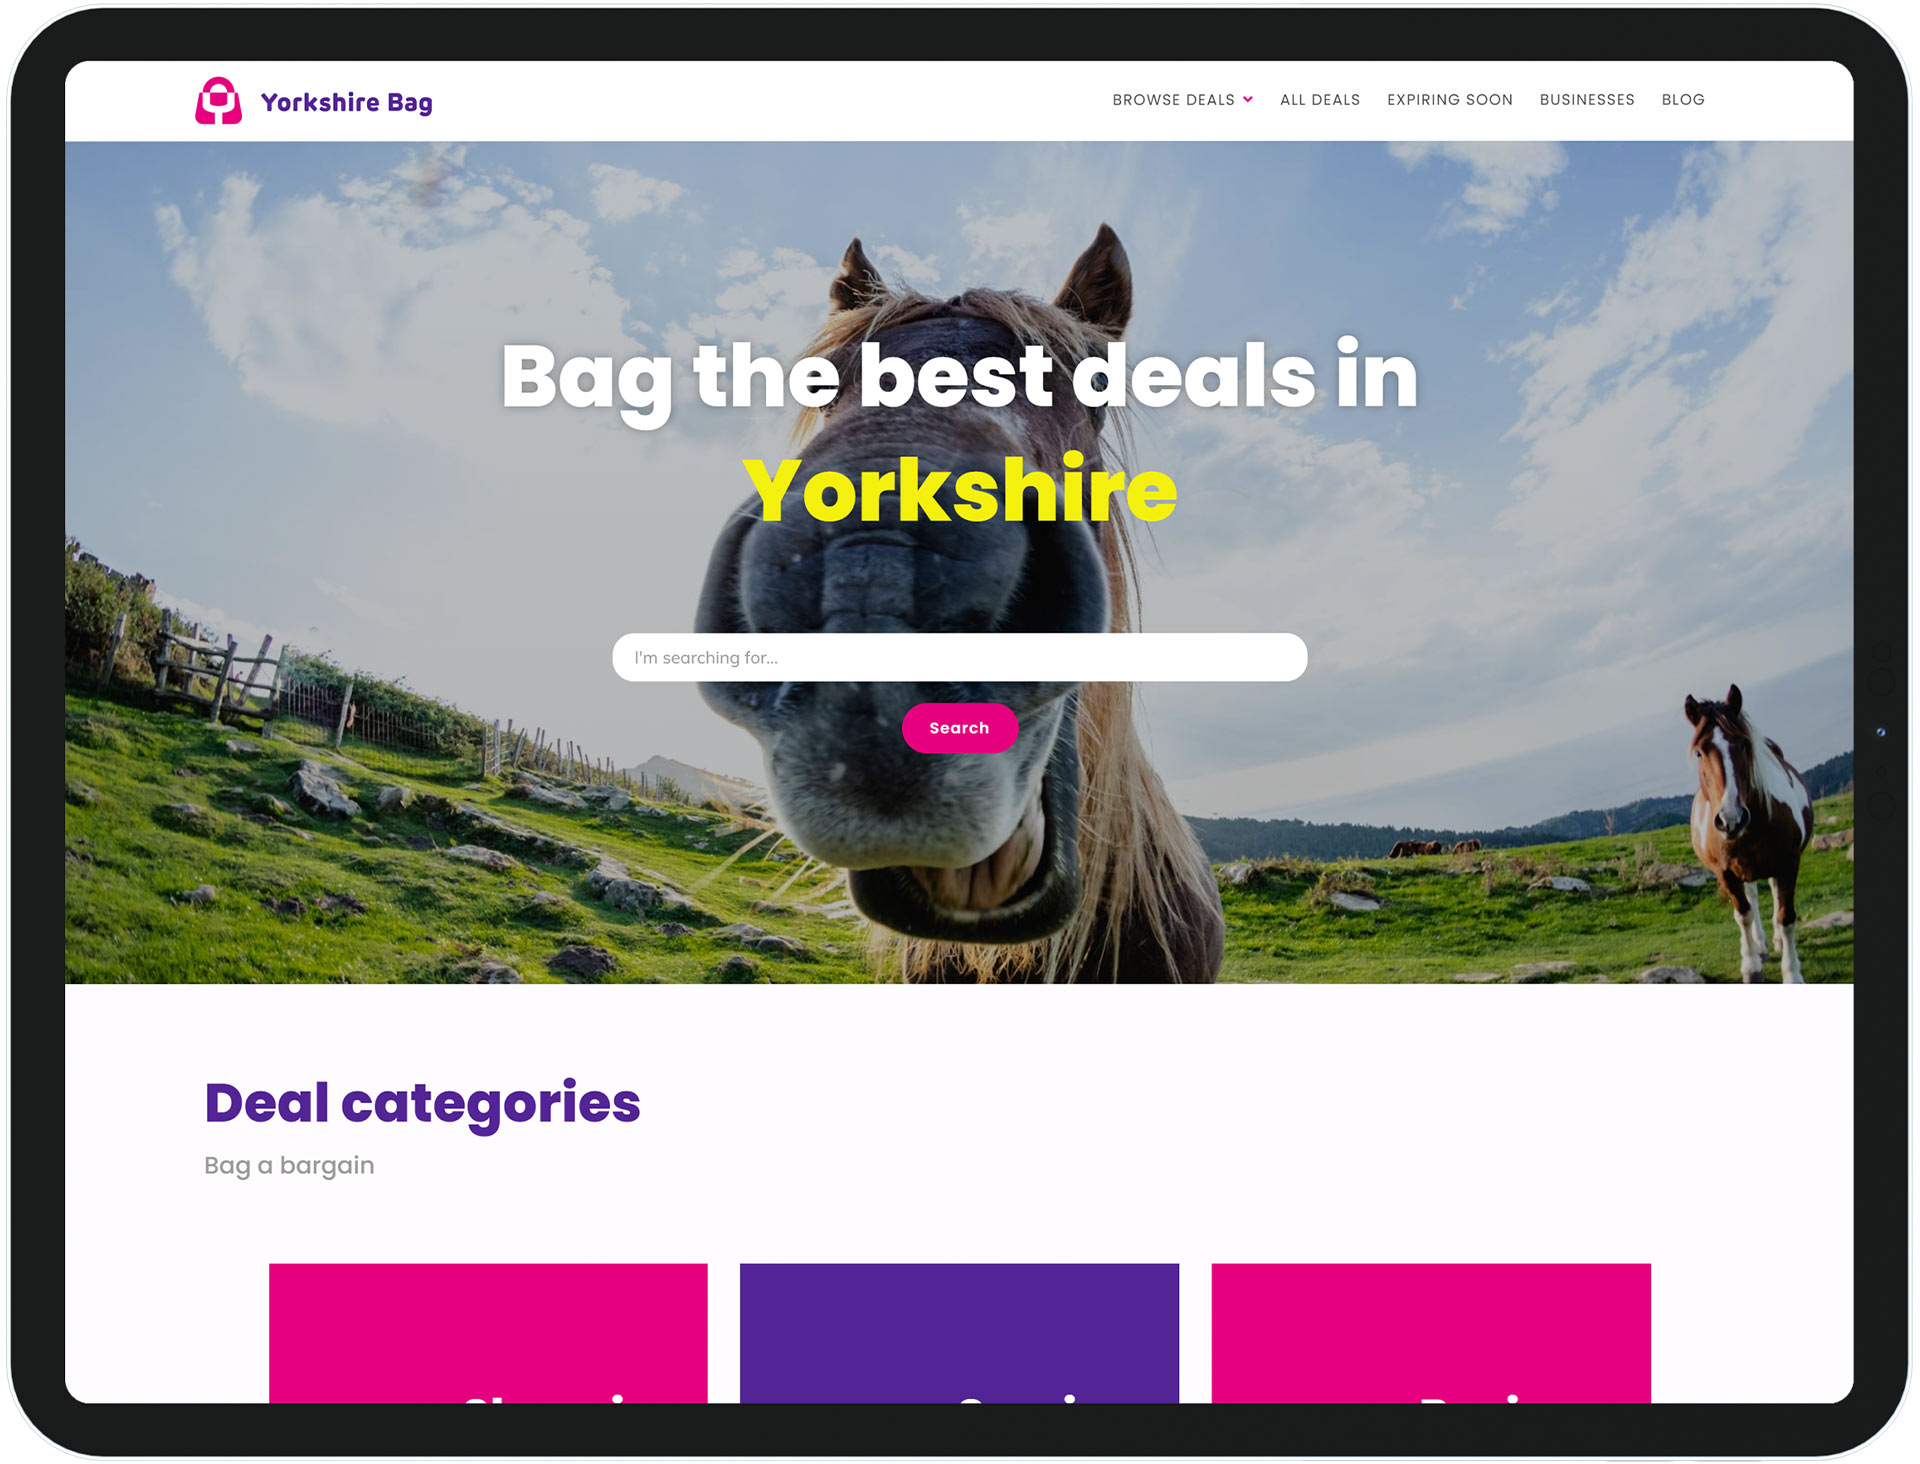 The Yorkshire Bag website design displayed on a tablet